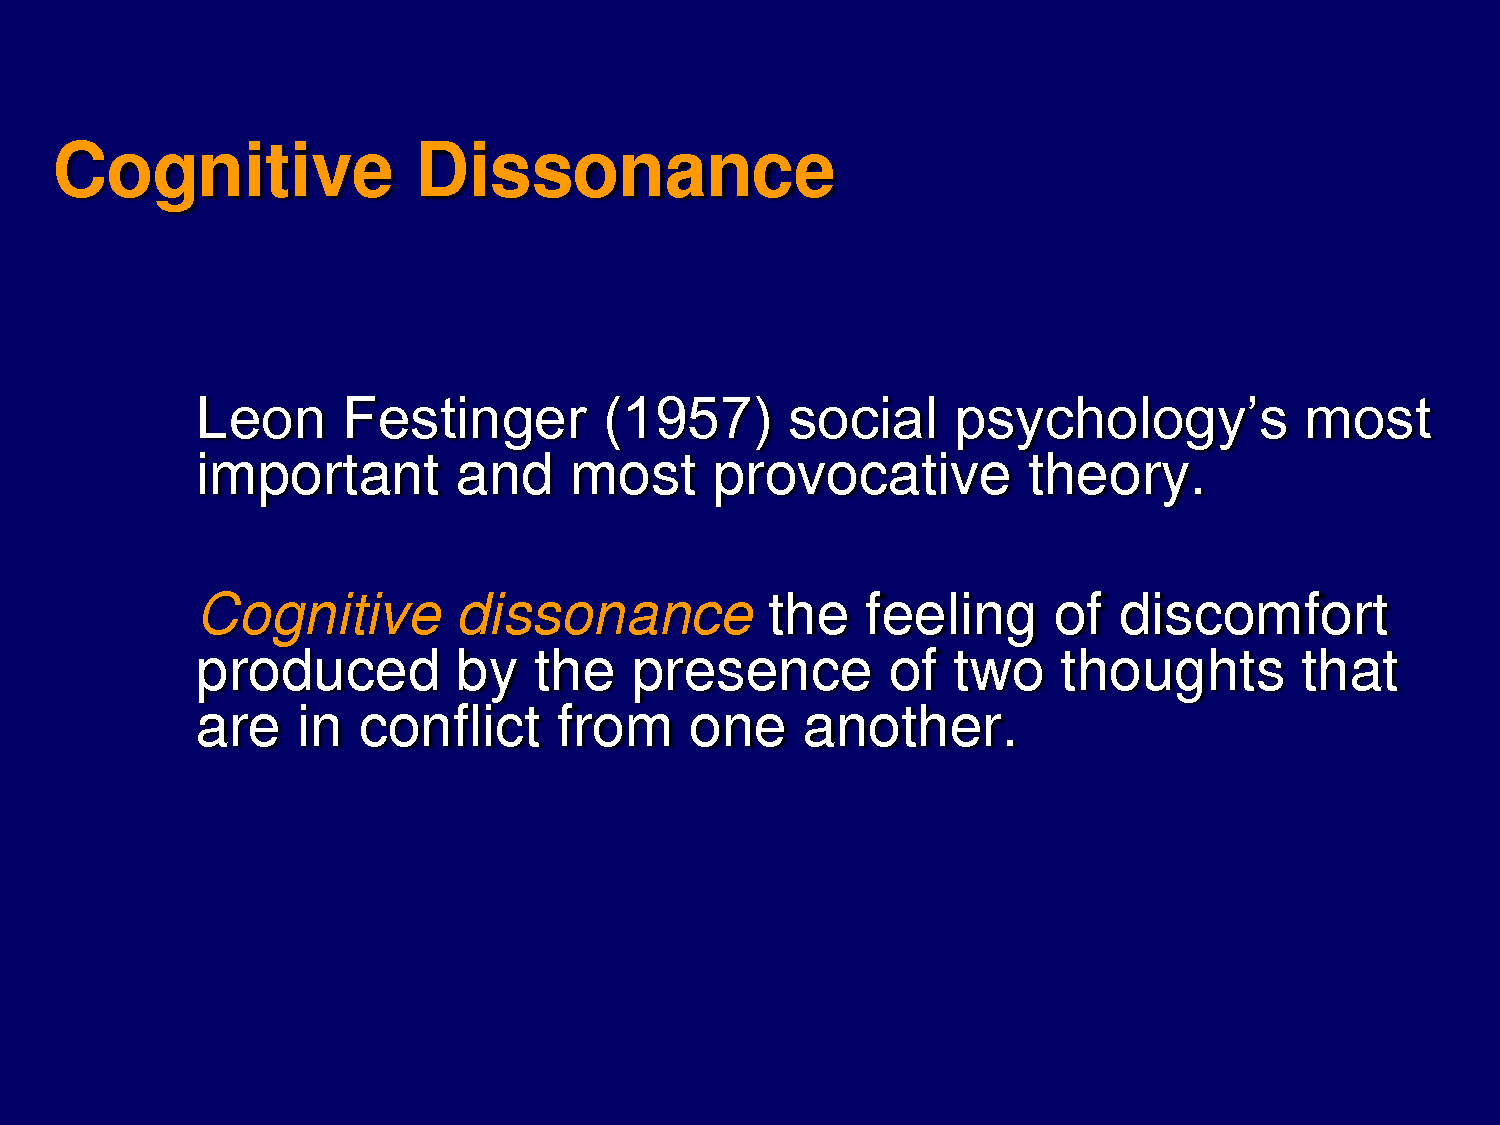 cognitive dissonance As humans, we tend to seek consistency in our beliefs and actions so, when you have two conflicting thoughts at the same time, or when you engage in behavior that conflicts with your beliefs, you are apt to feel a sense of discomfort.